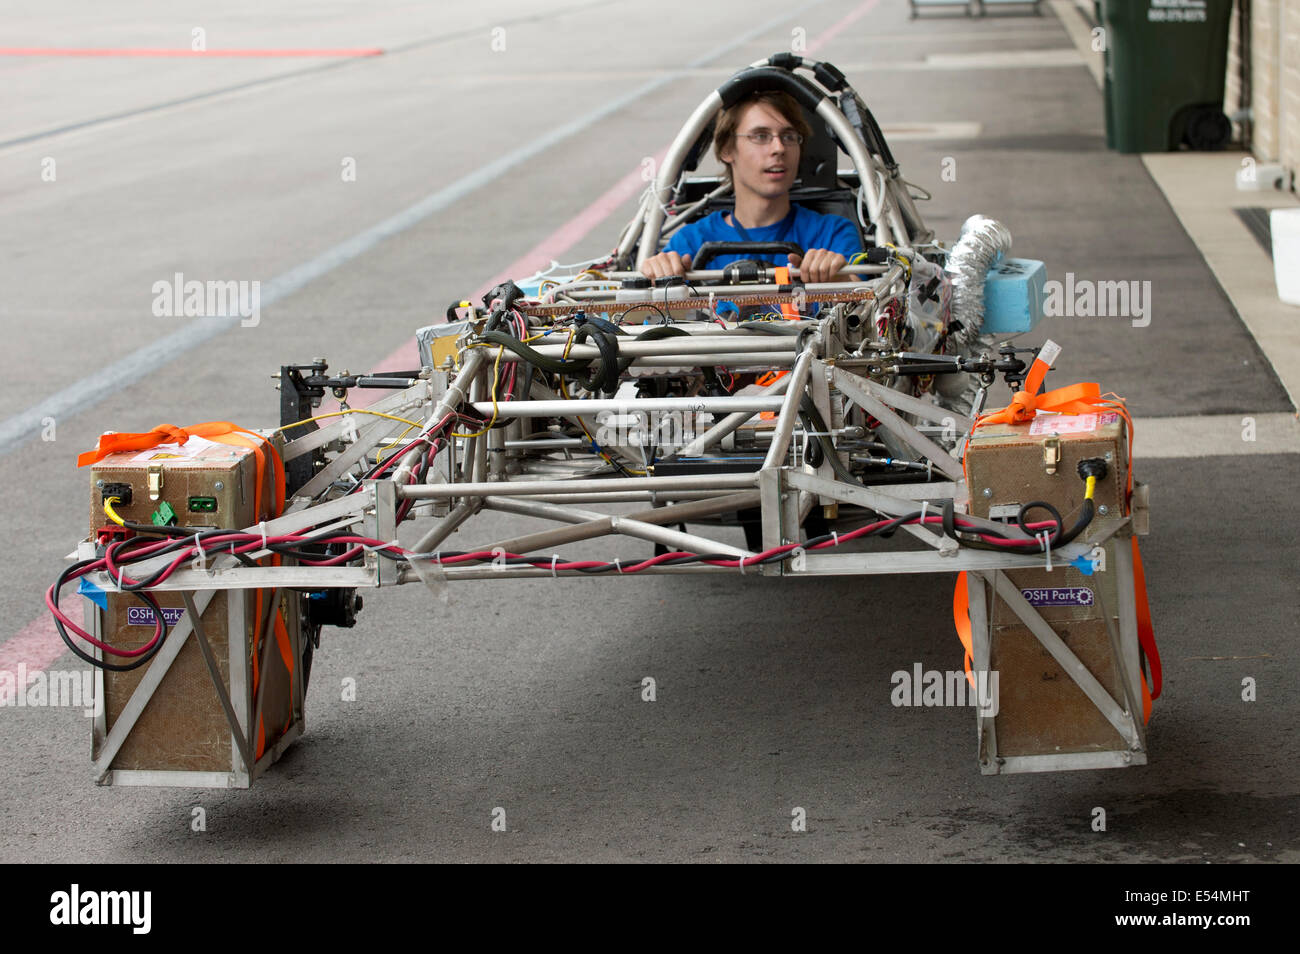 Design of car frame - A Driver Tests The University Of Kentucky S Solar Car Frame During Qualifying For 1 700 Mile